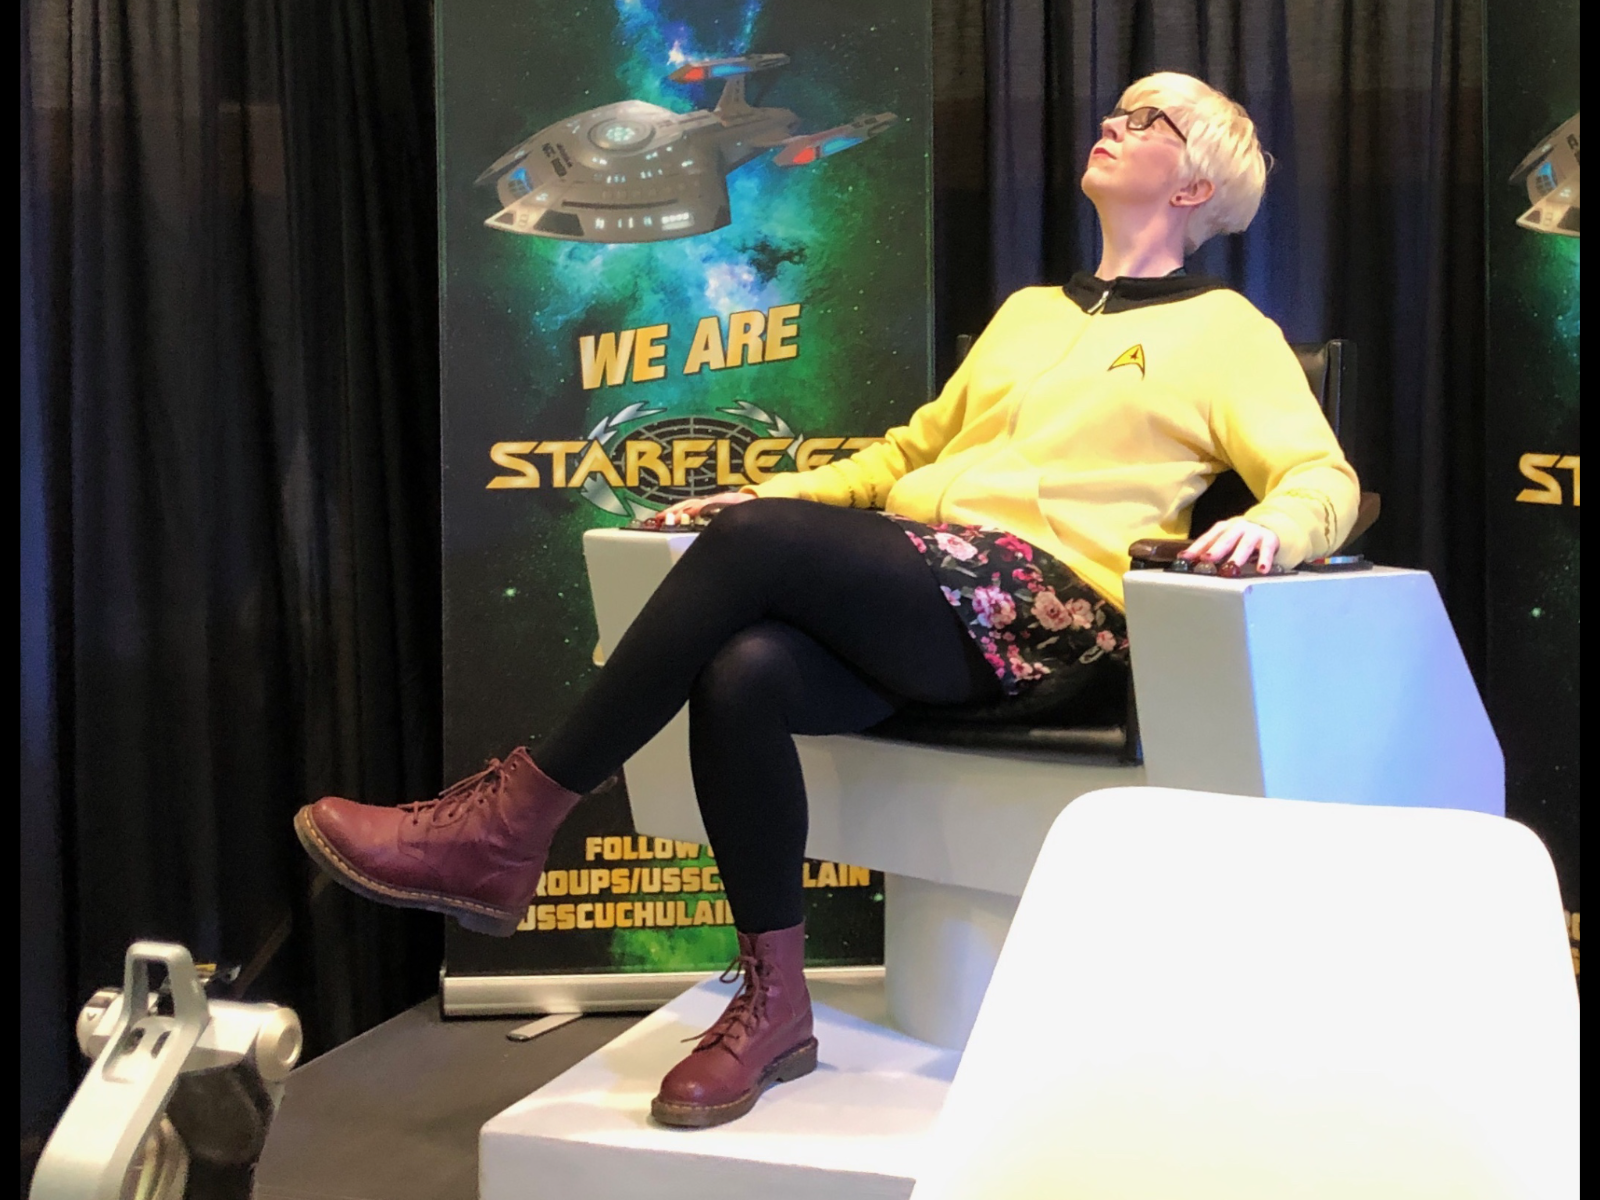 WITS executive member Anne Marie Flaherty kicking back before speaking at WorldCon 2019